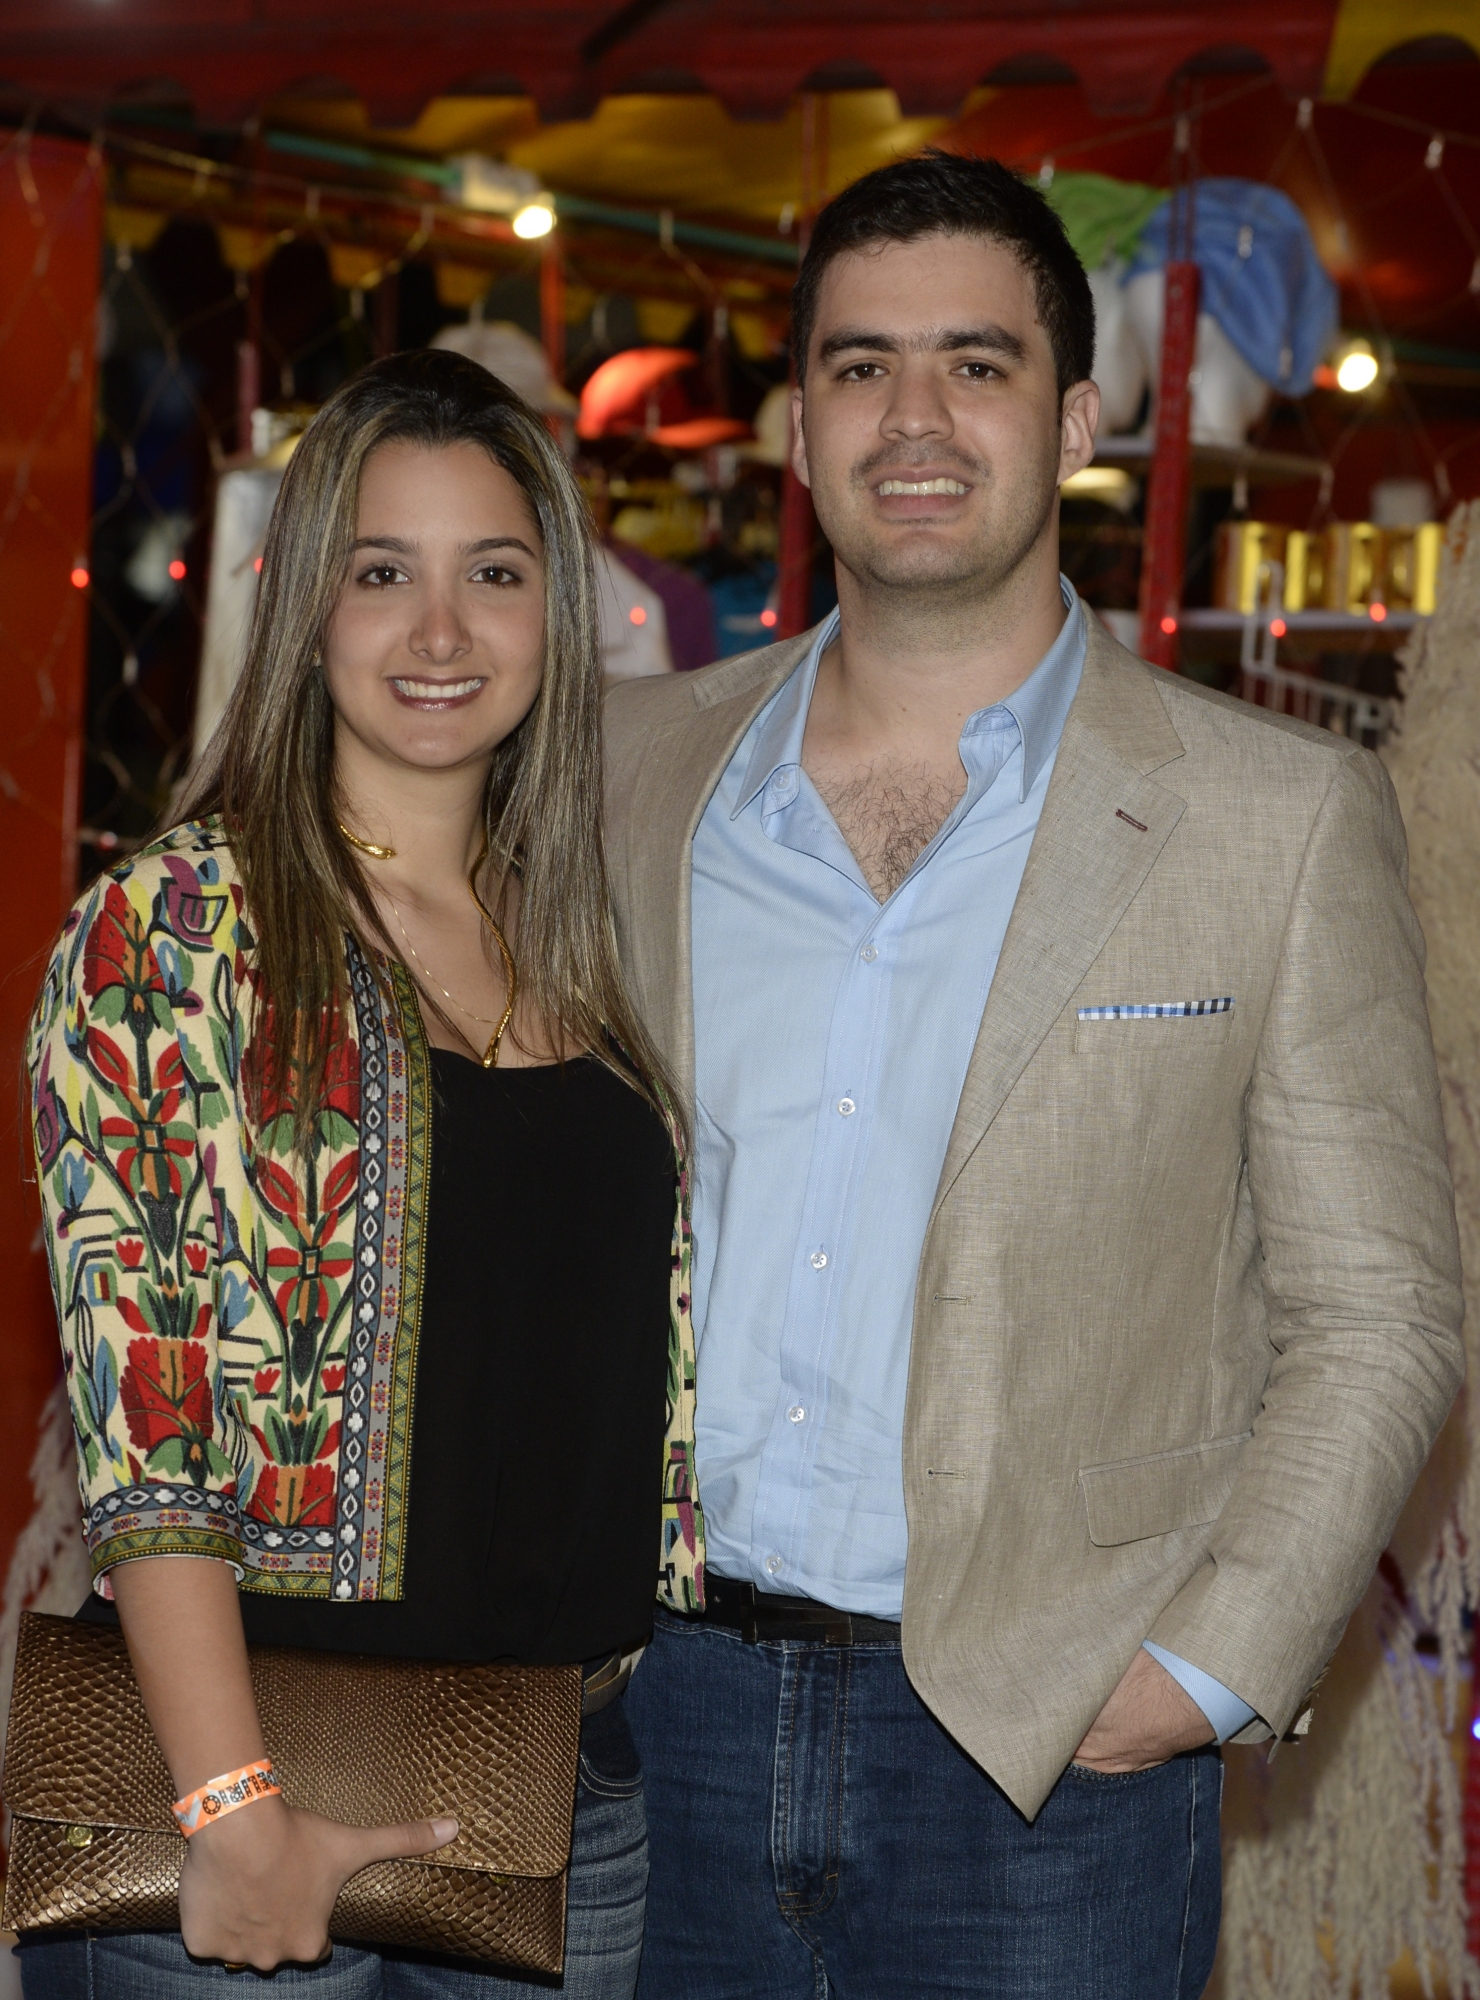 Juliana Ruiz y Luis Enrique Meza.